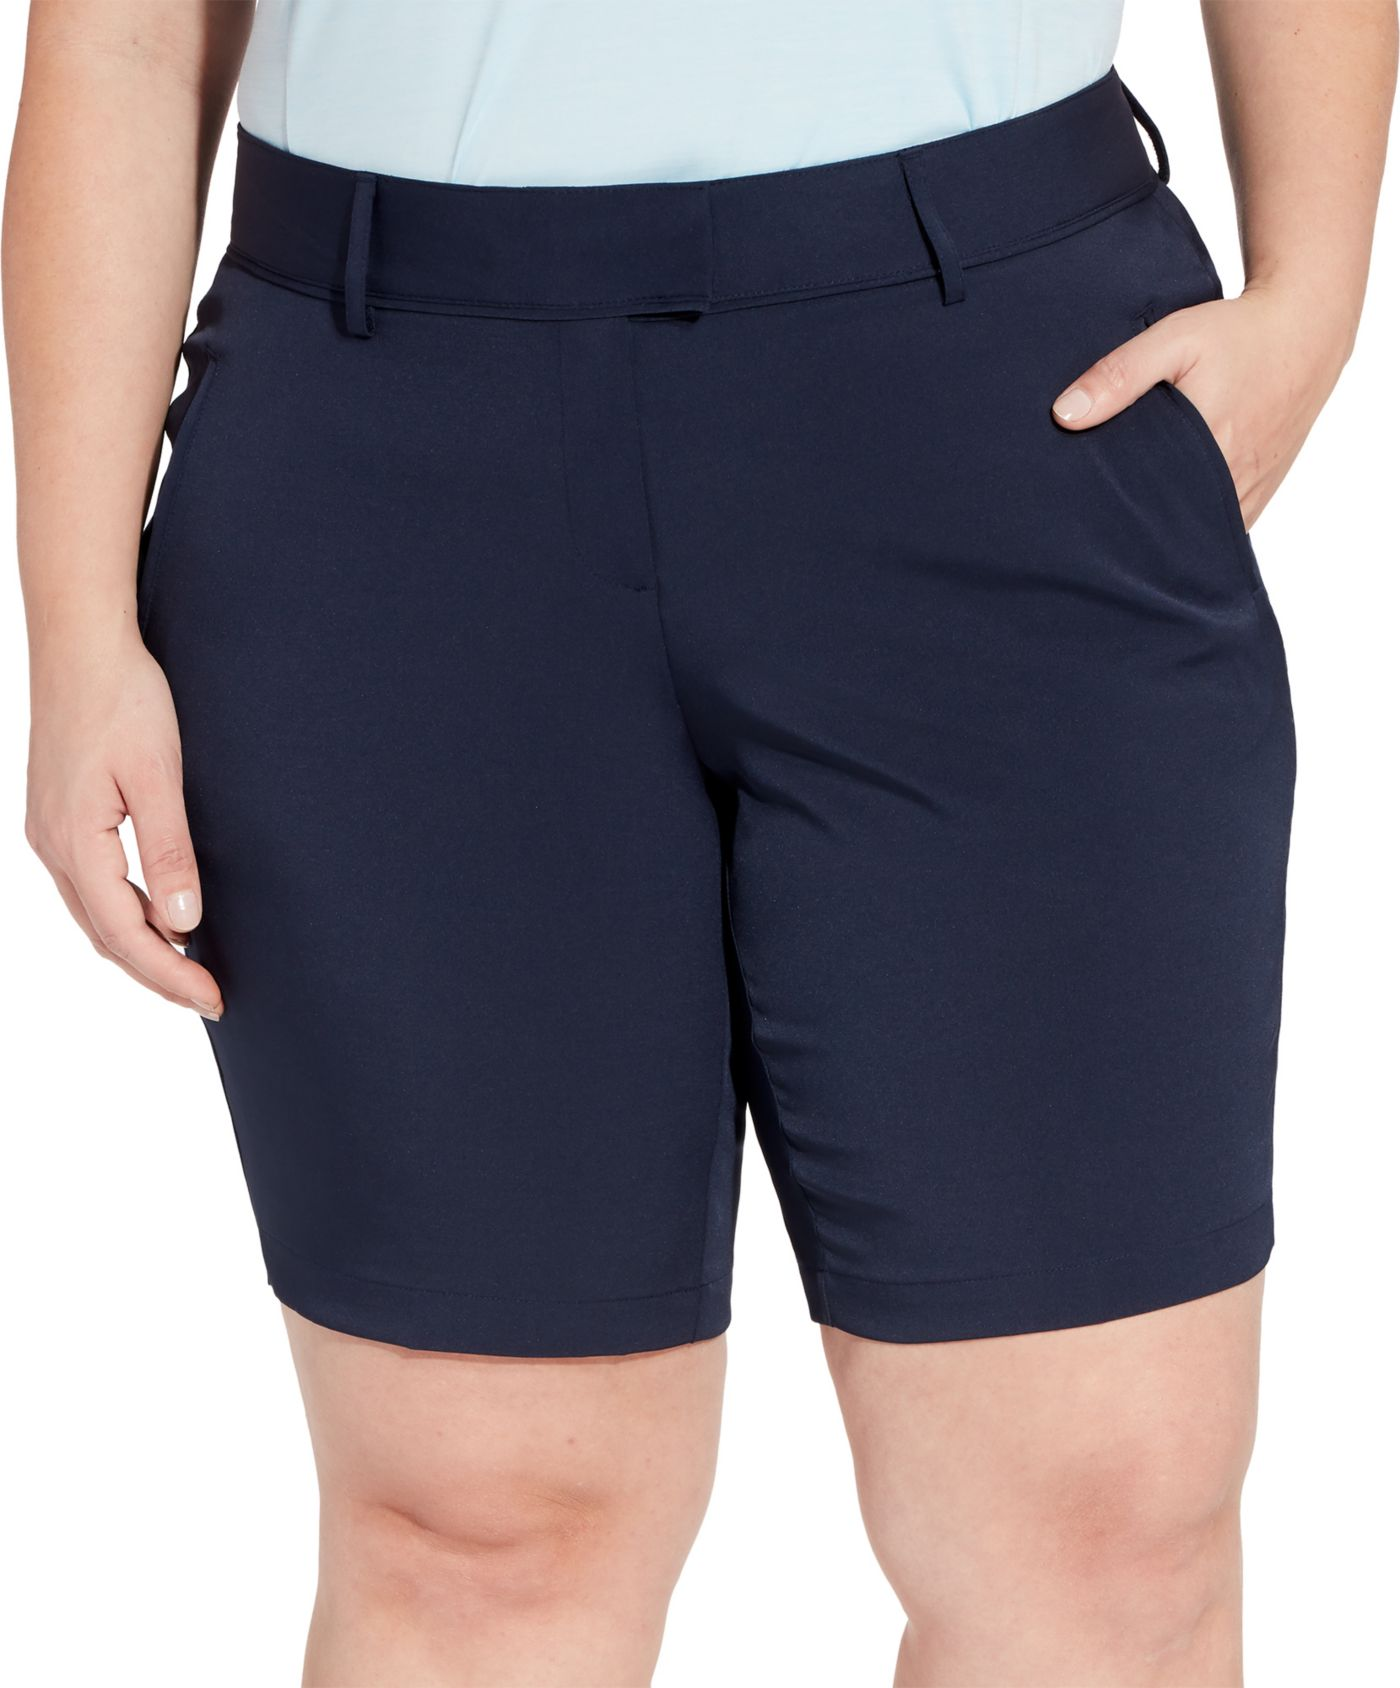 Lady Hagen Women's Essential Golf Shorts – Extended Sizes